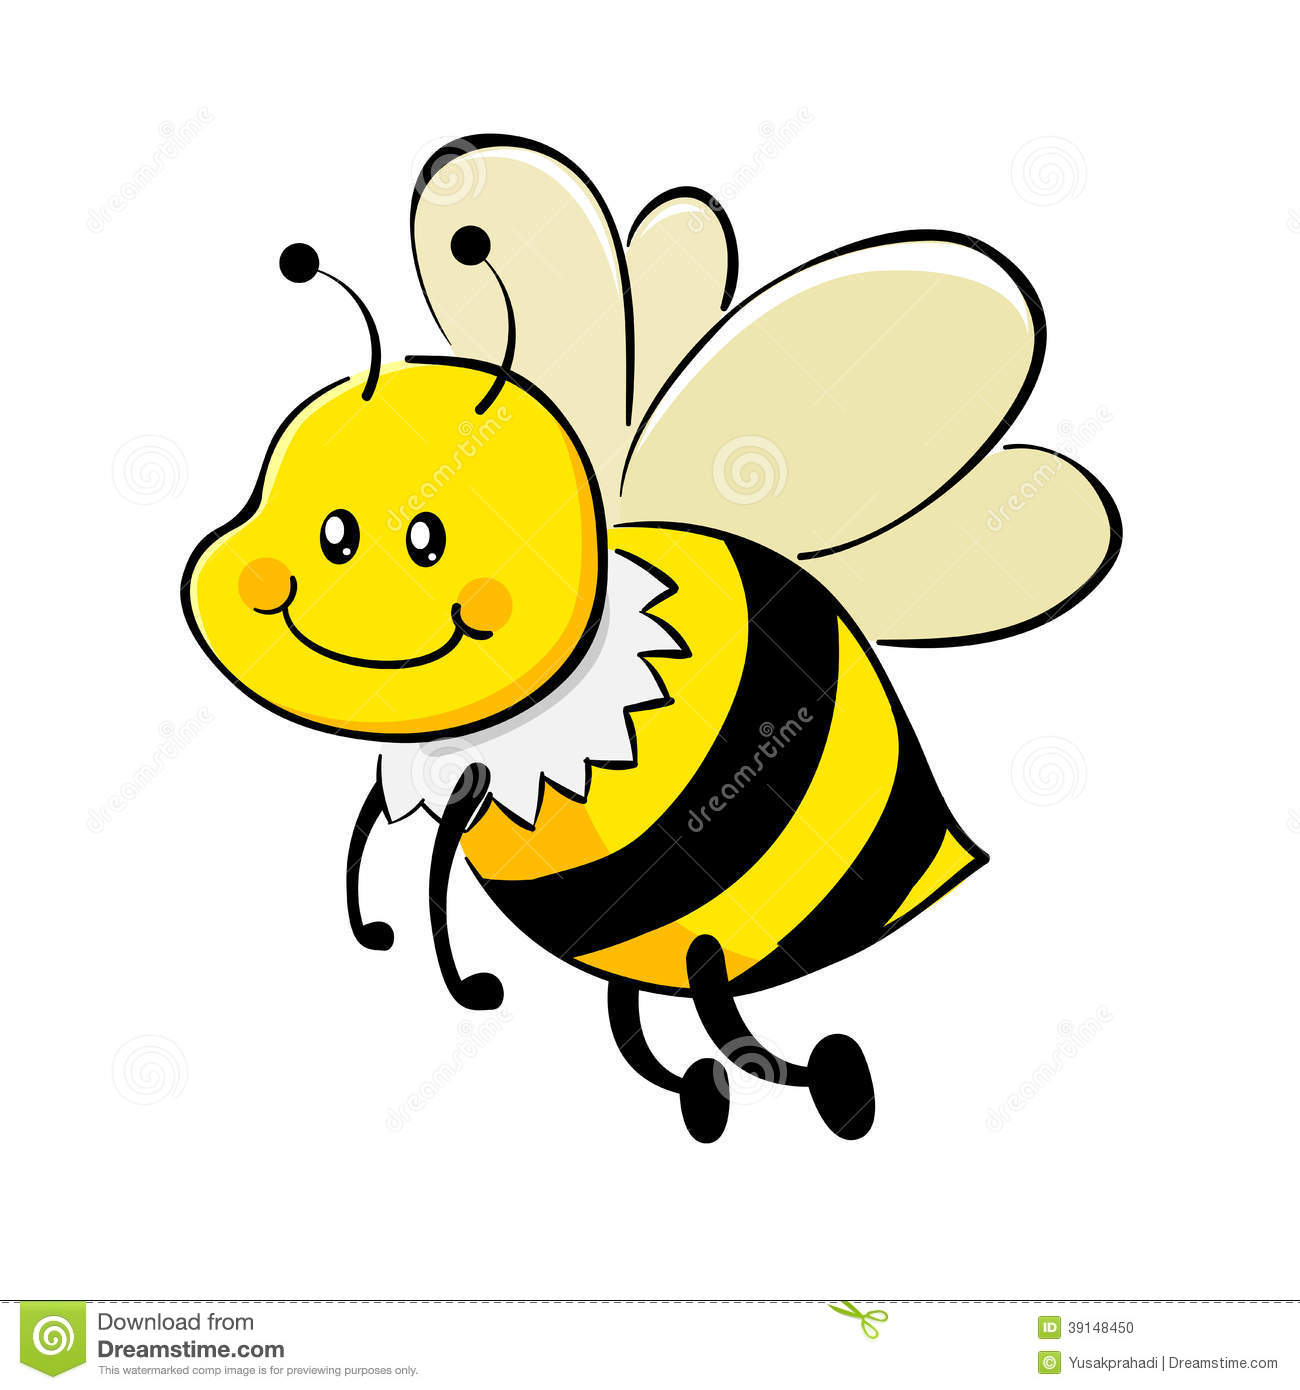 Bees clipart vector.  collection of cute